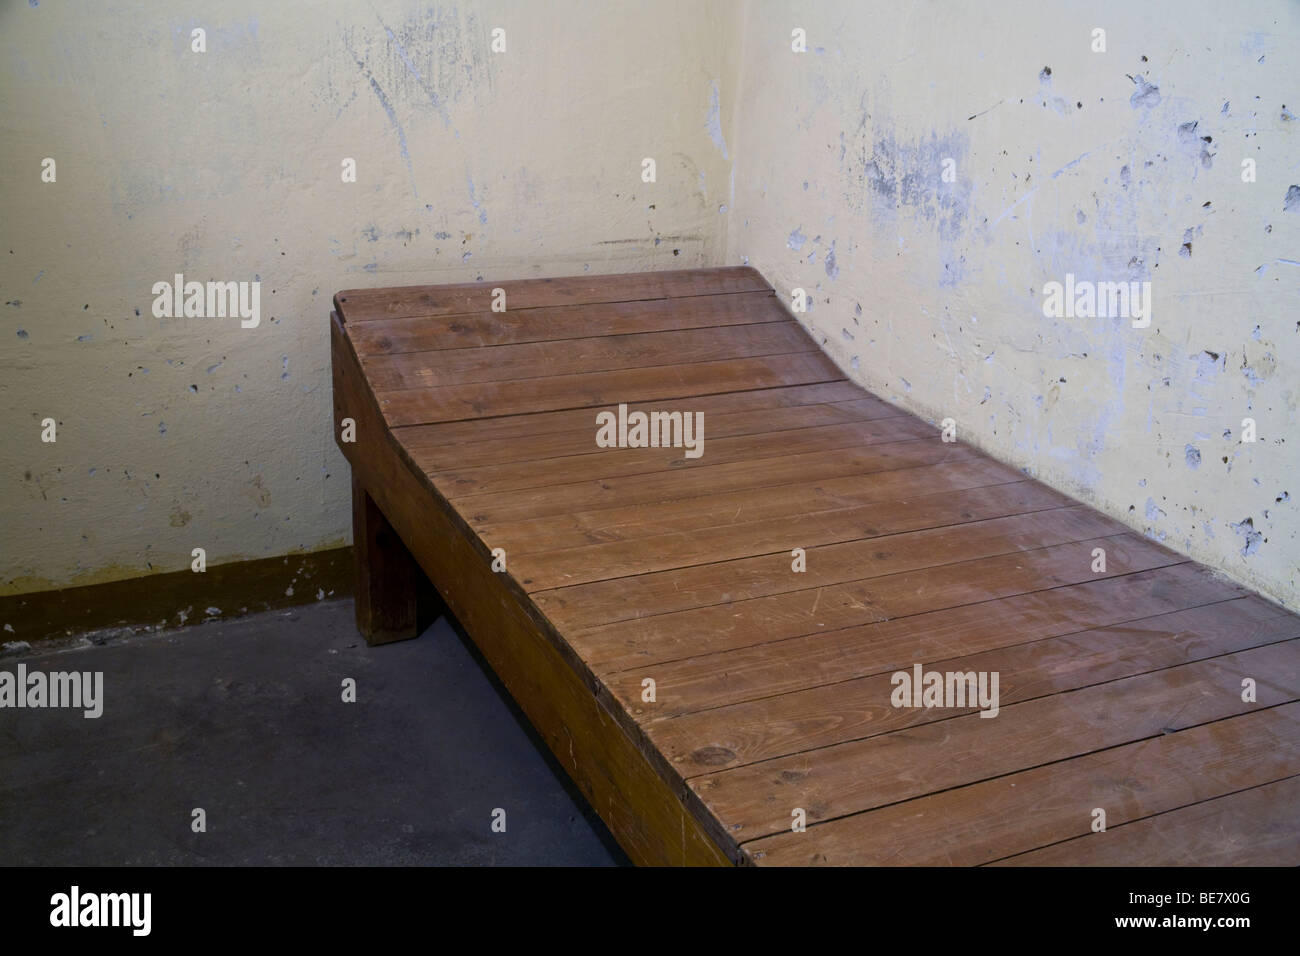 Cot in a windowless cell for solitary confinement, Berlin-Hohenschoenhausen memorial, former prison of the GDR's - Stock Image